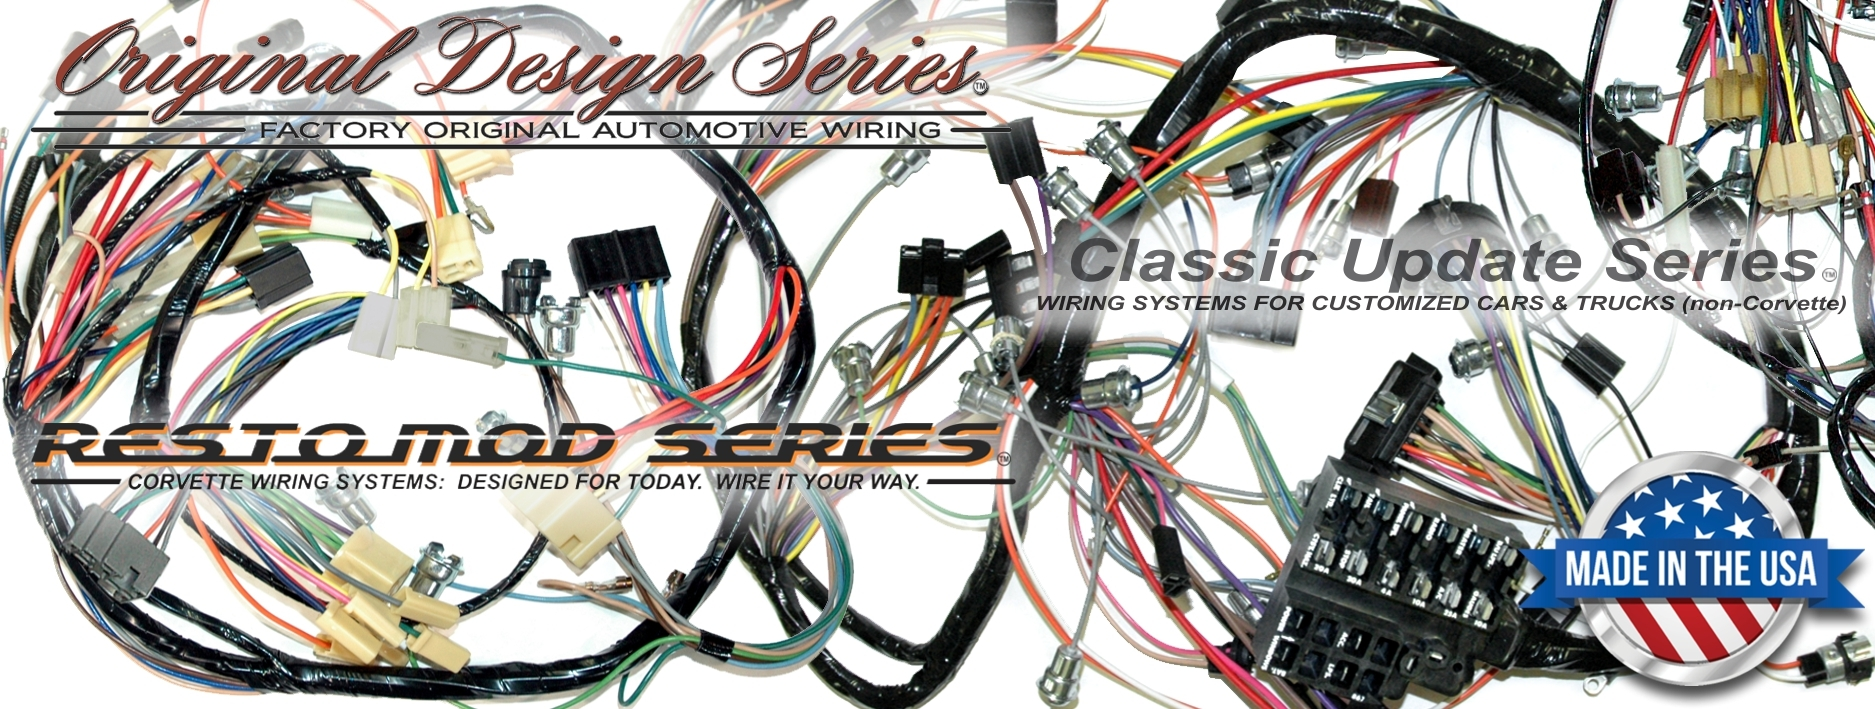 exact oem reproduction wiring harnesses and restomod wiring systems rh lectriclimited com  reproduction wiring harness mopar